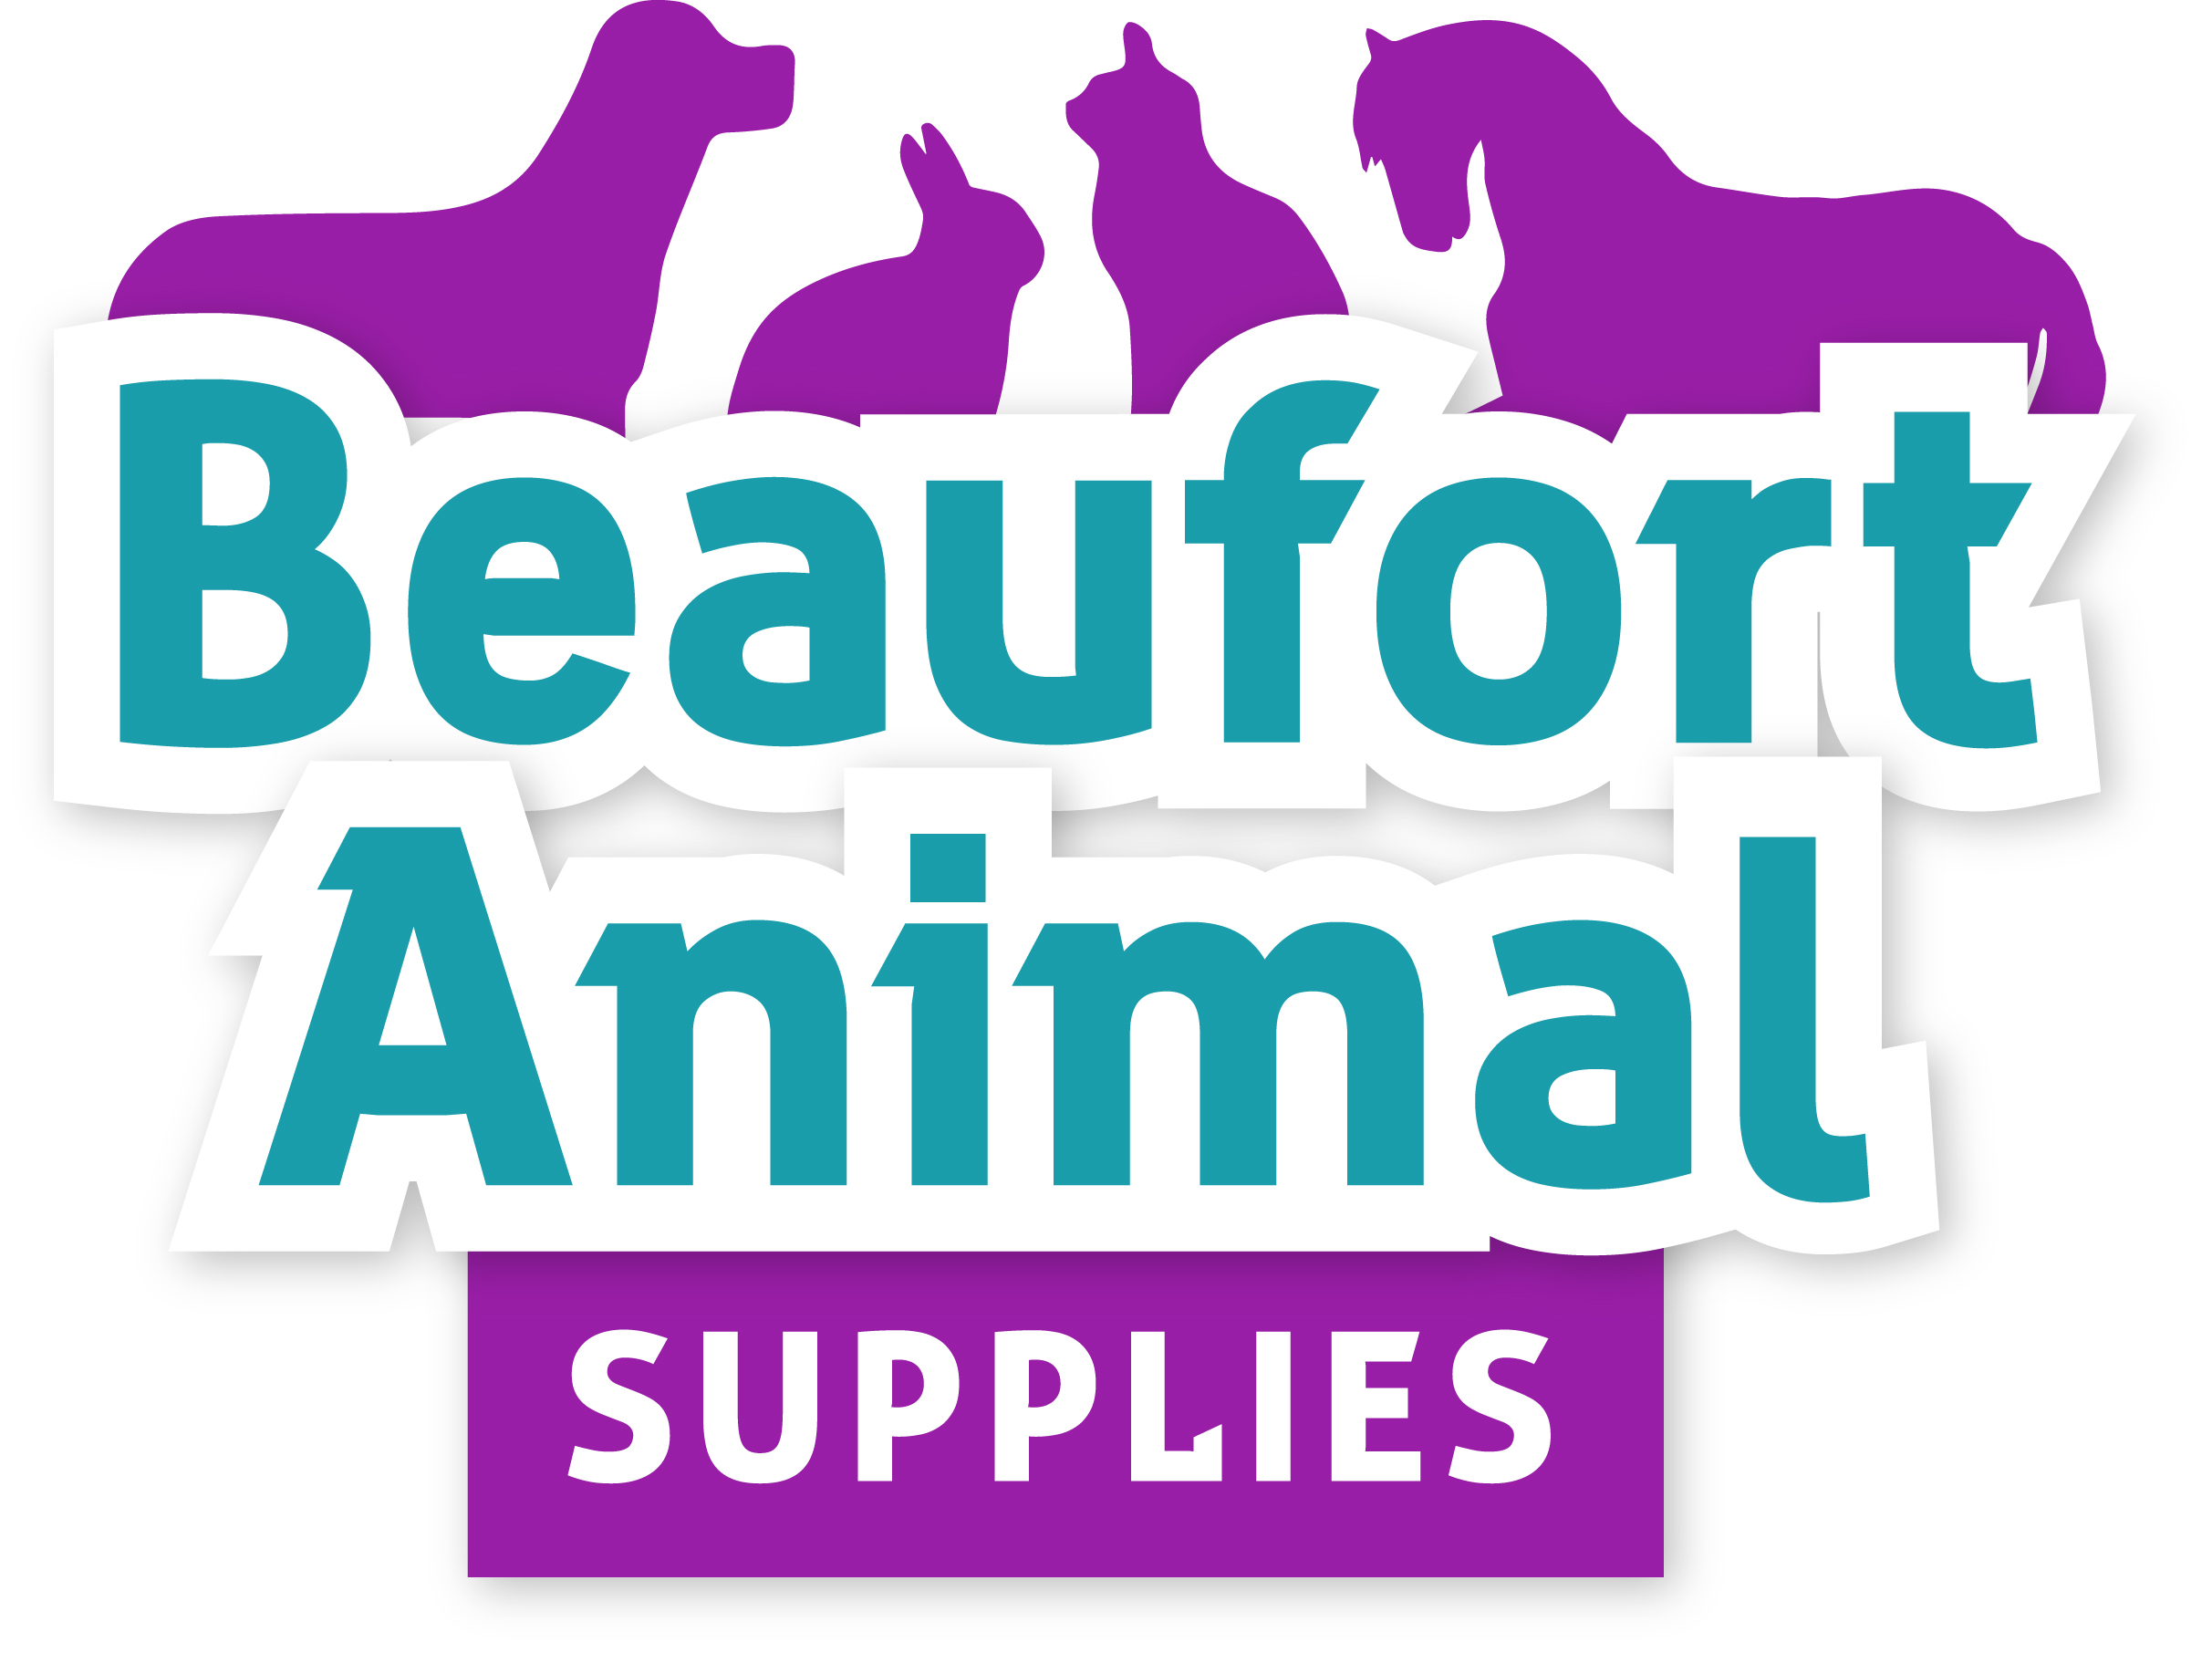 Beaufort Animal Supplies